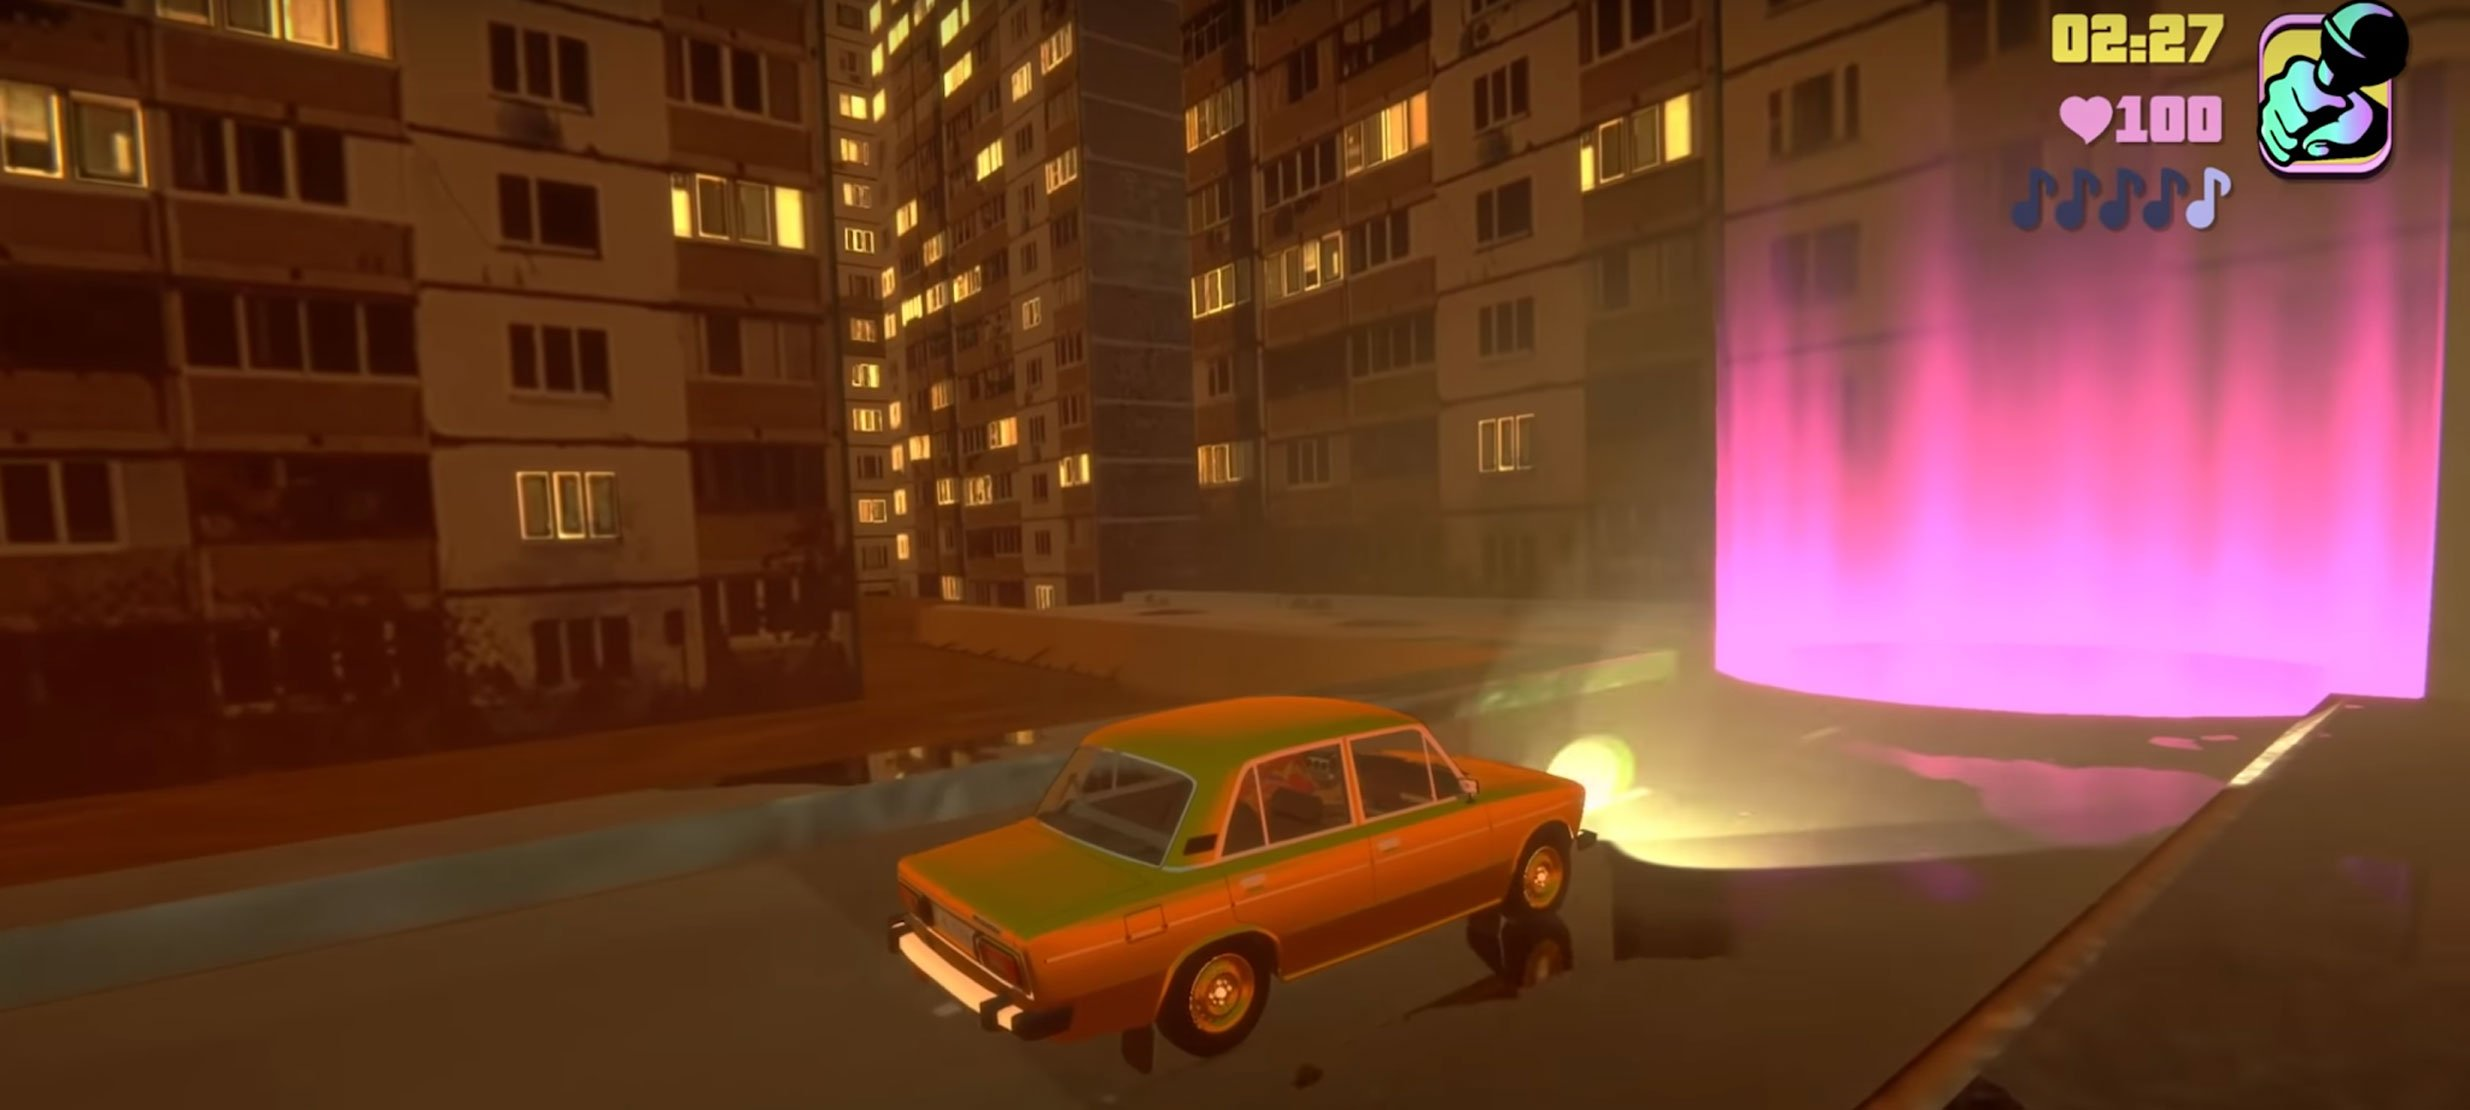 Alyona Alyona shows us what Grand Theft Auto in Eastern Europe would be like